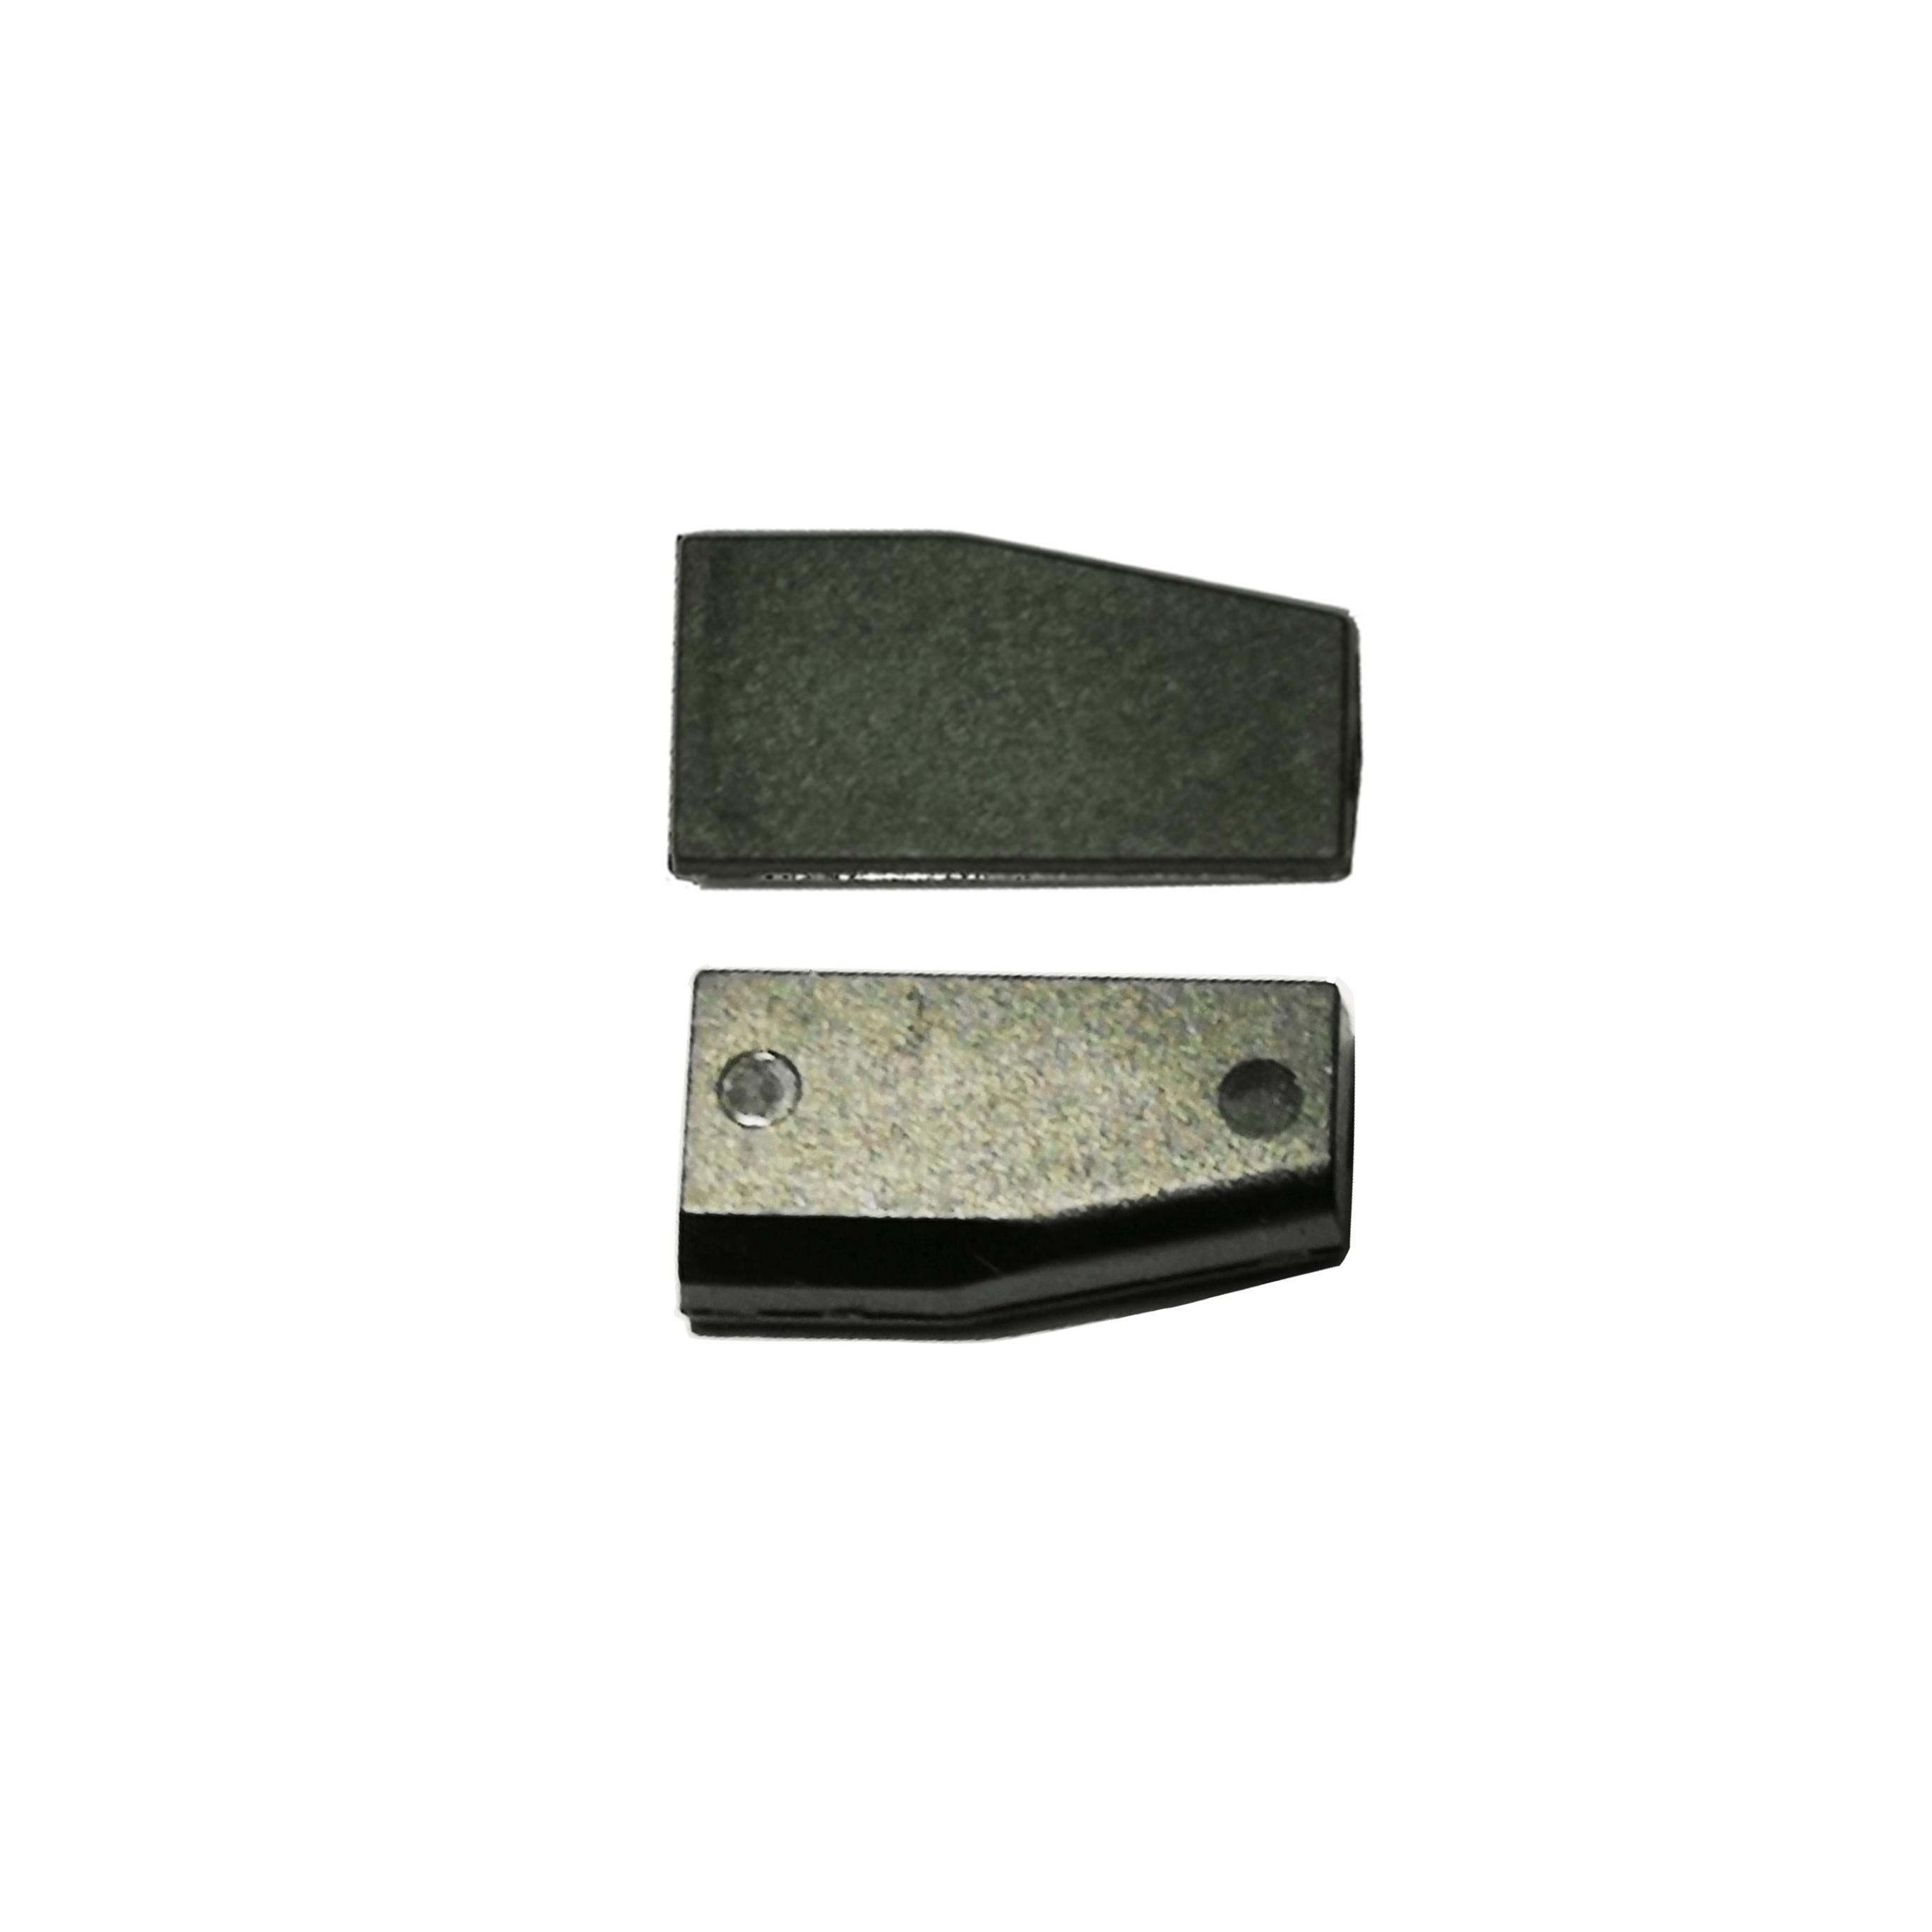 FO-T005-C Aftermarket T4 (ID 4C) Ford/Toyota Glass Transponder Chip